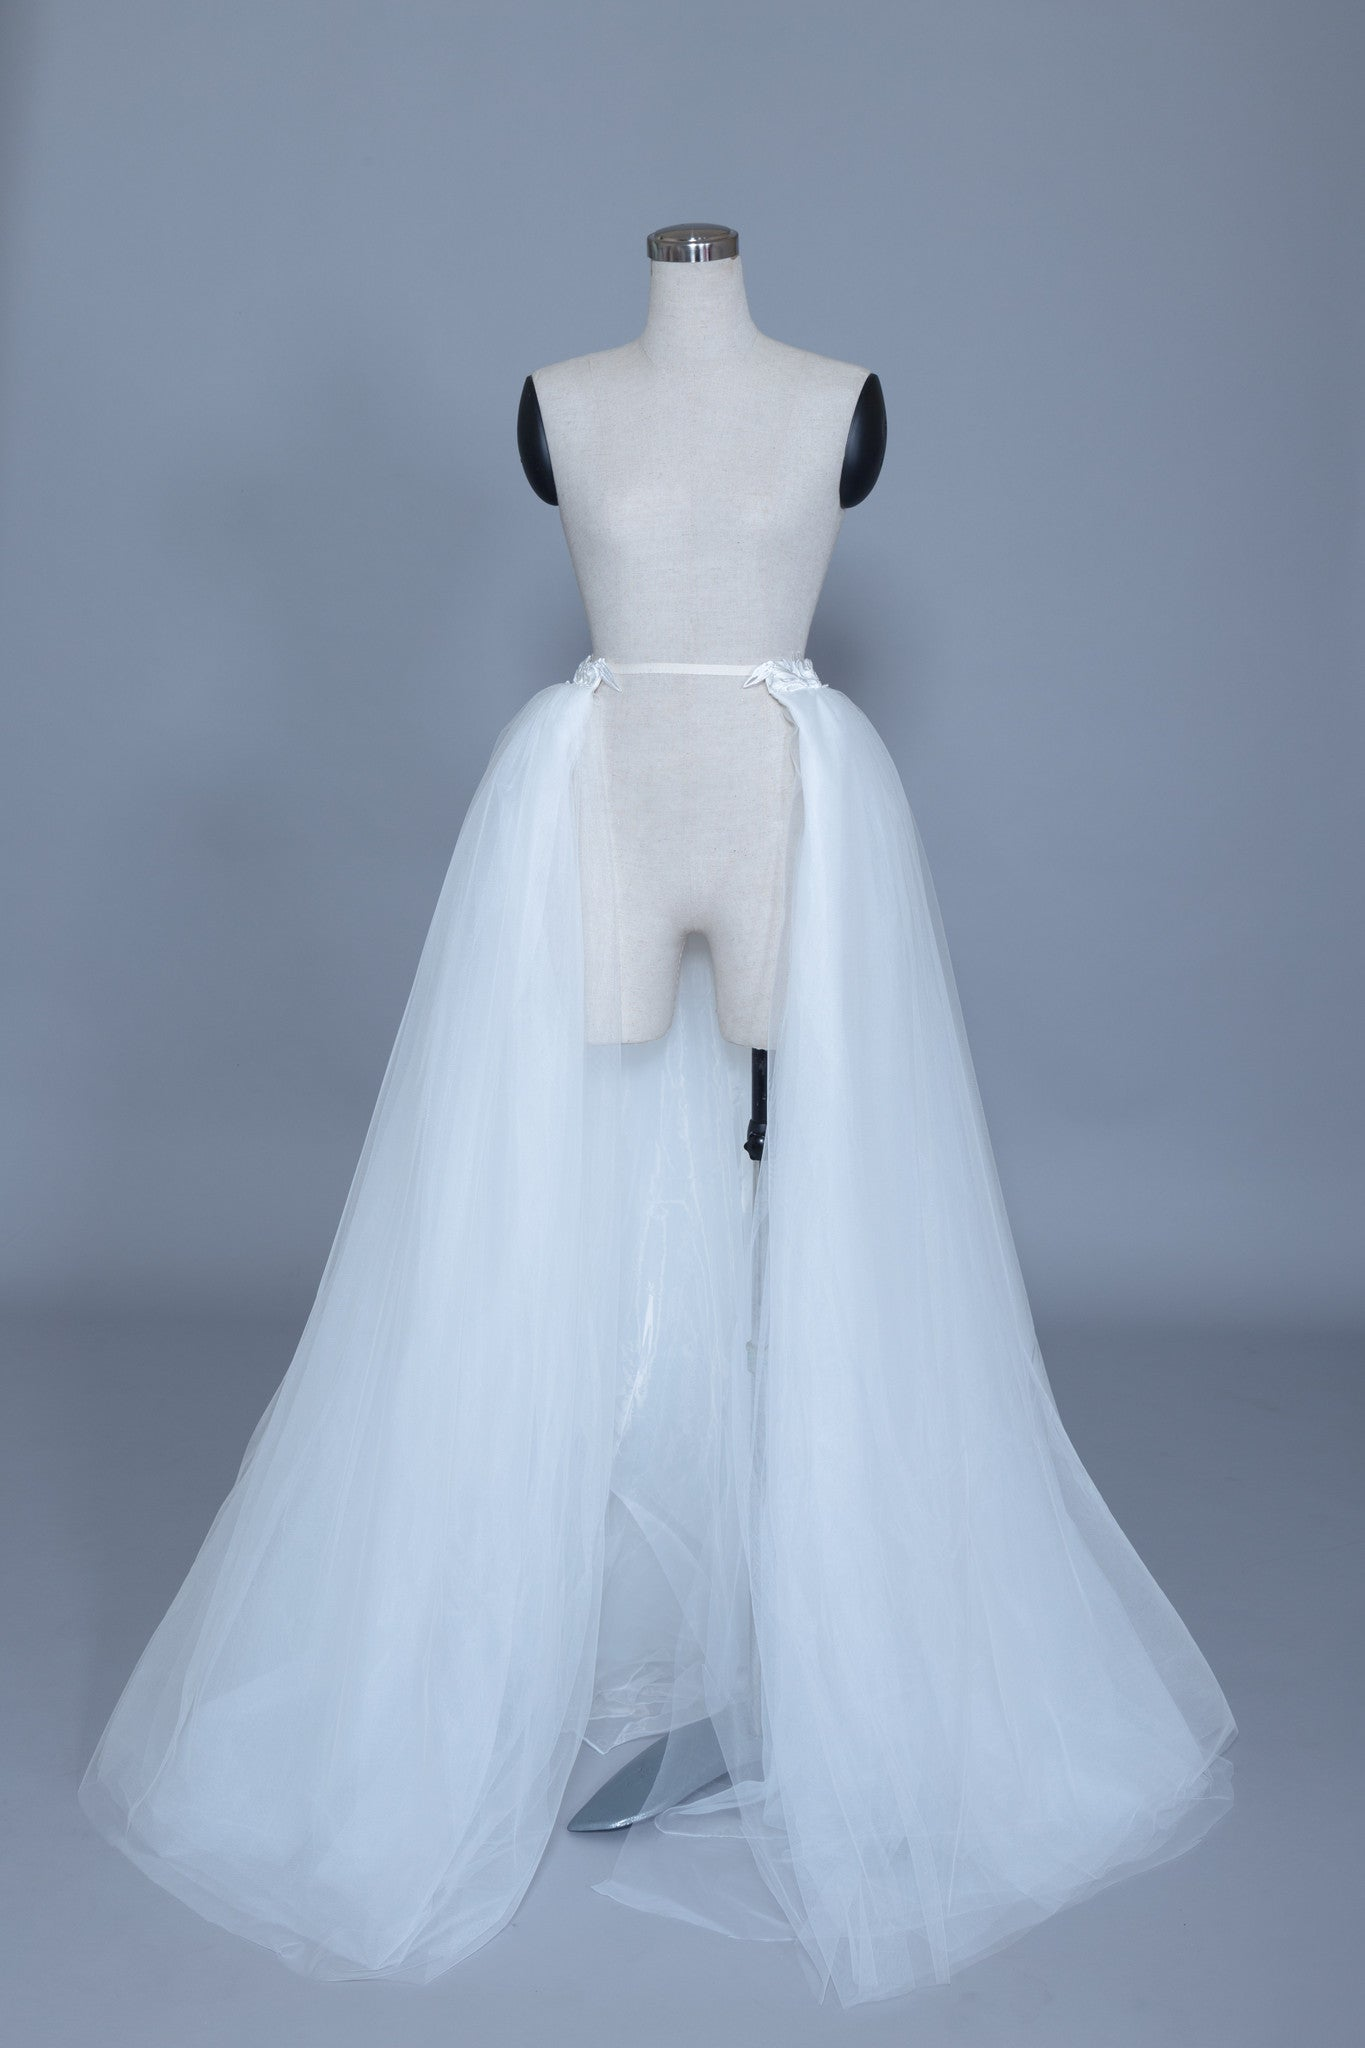 Detachable Bridal Tulle Skirt (#Basilia) - Dream Dresses by P.M.N  - 1